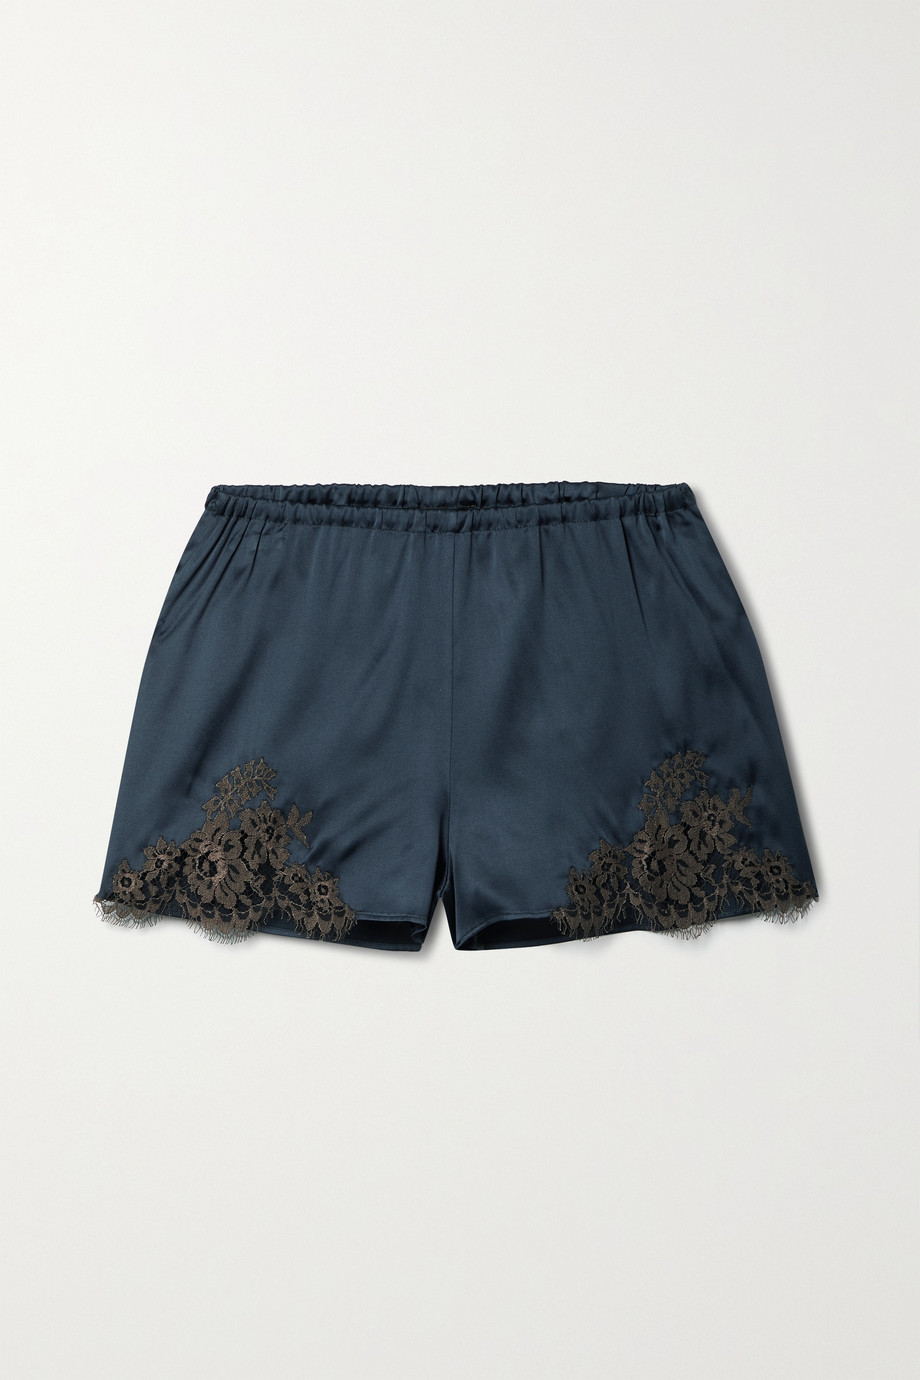 I.D. Sarrieri Hôtel Particulier Chantilly lace-trimmed silk-blend satin pajama shorts